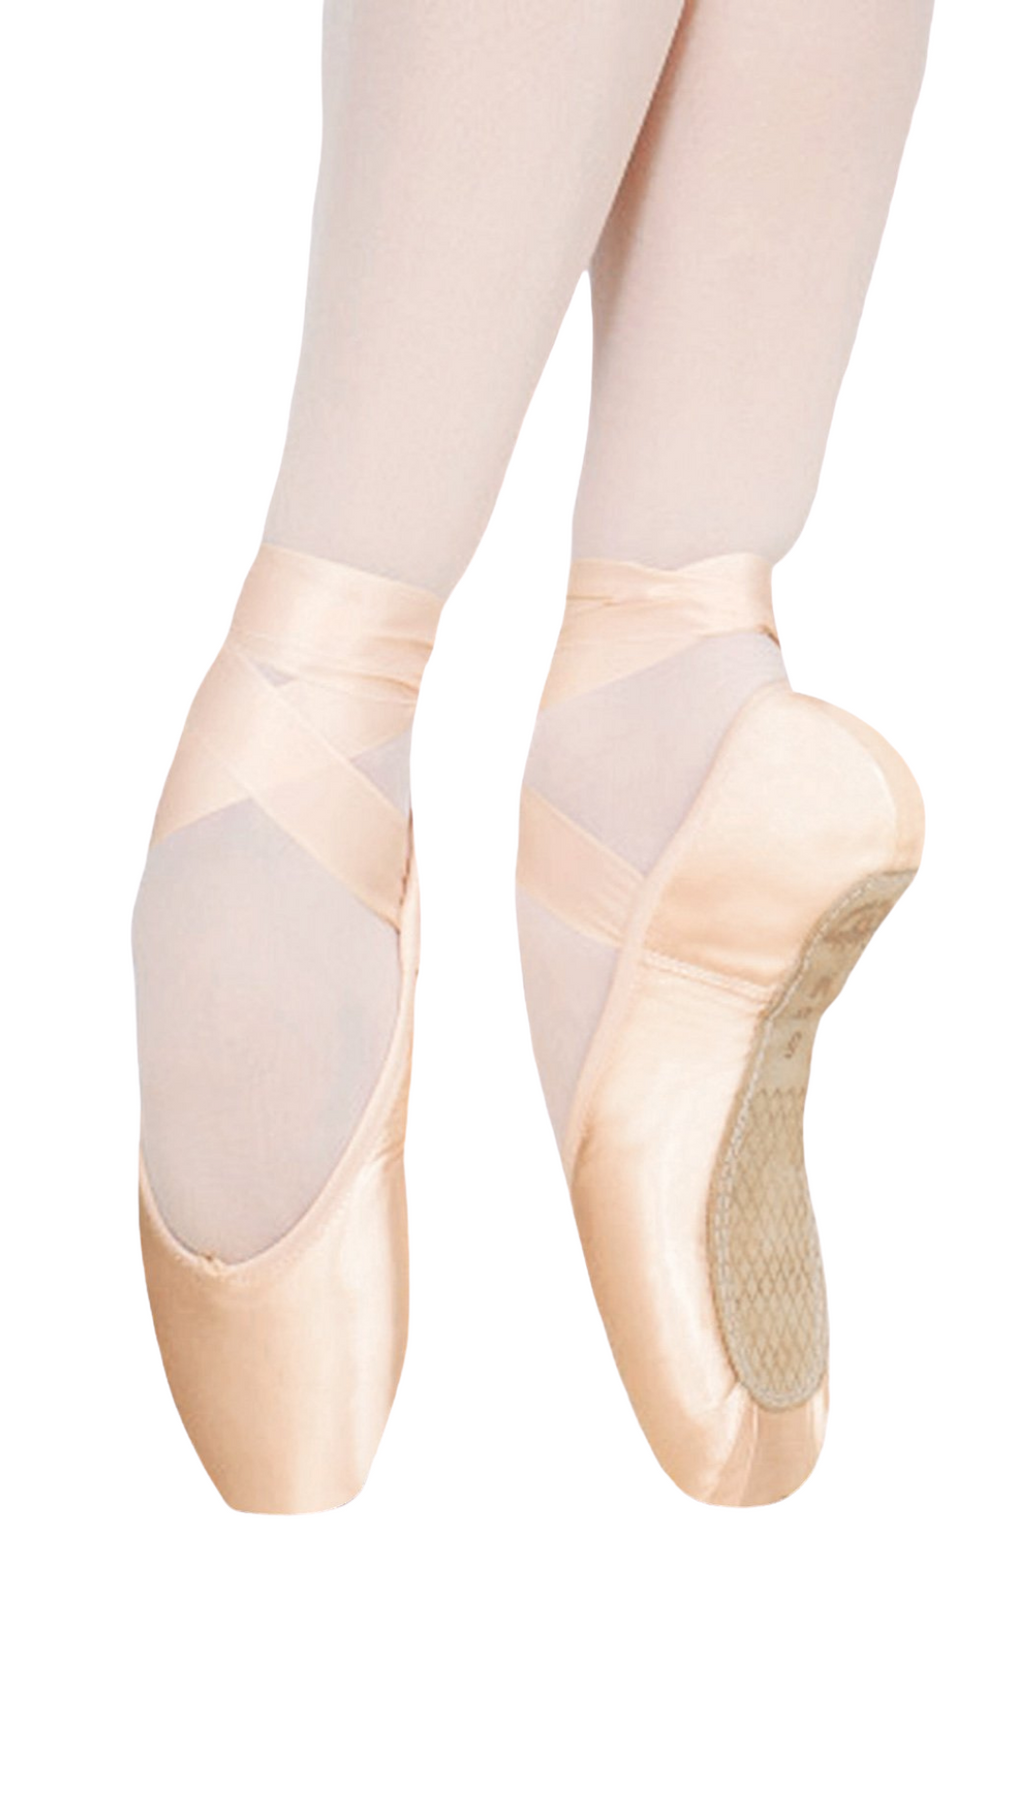 2007 Pointe Shoe - Soft Shank (SS)